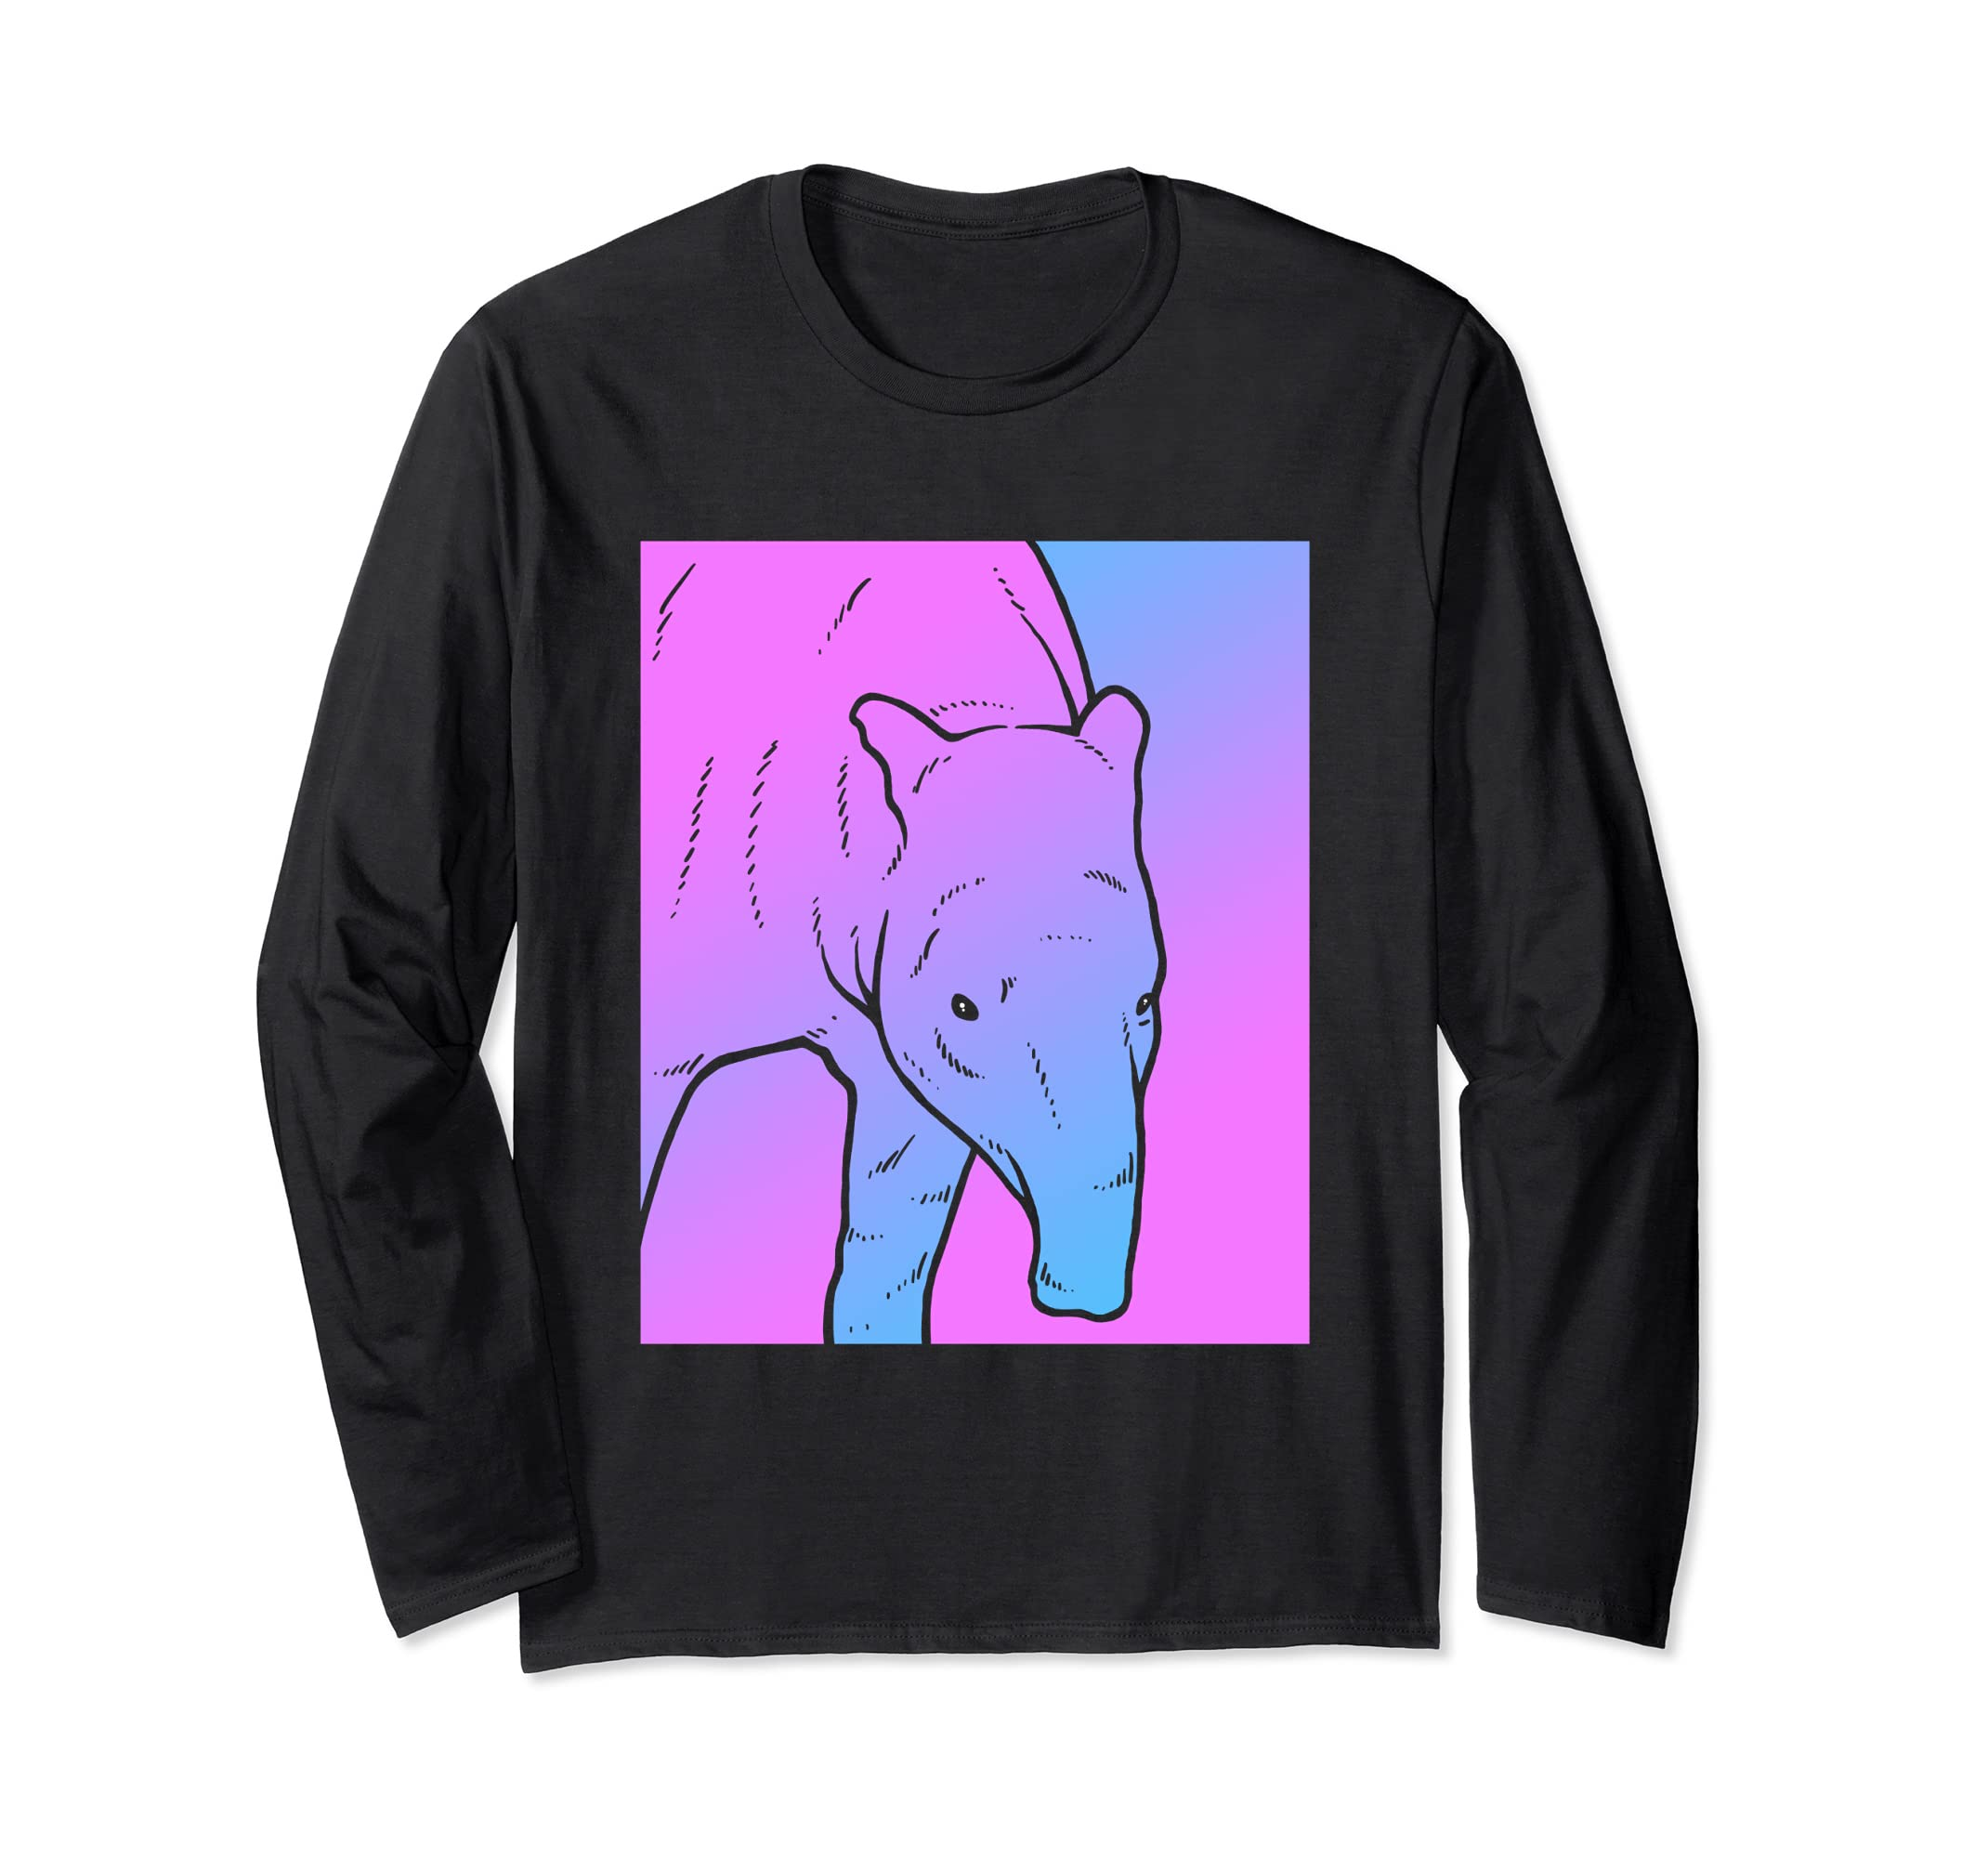 Vaporwave Tapir Aesthetic Pig Long Sleeve Shirt-Bawle